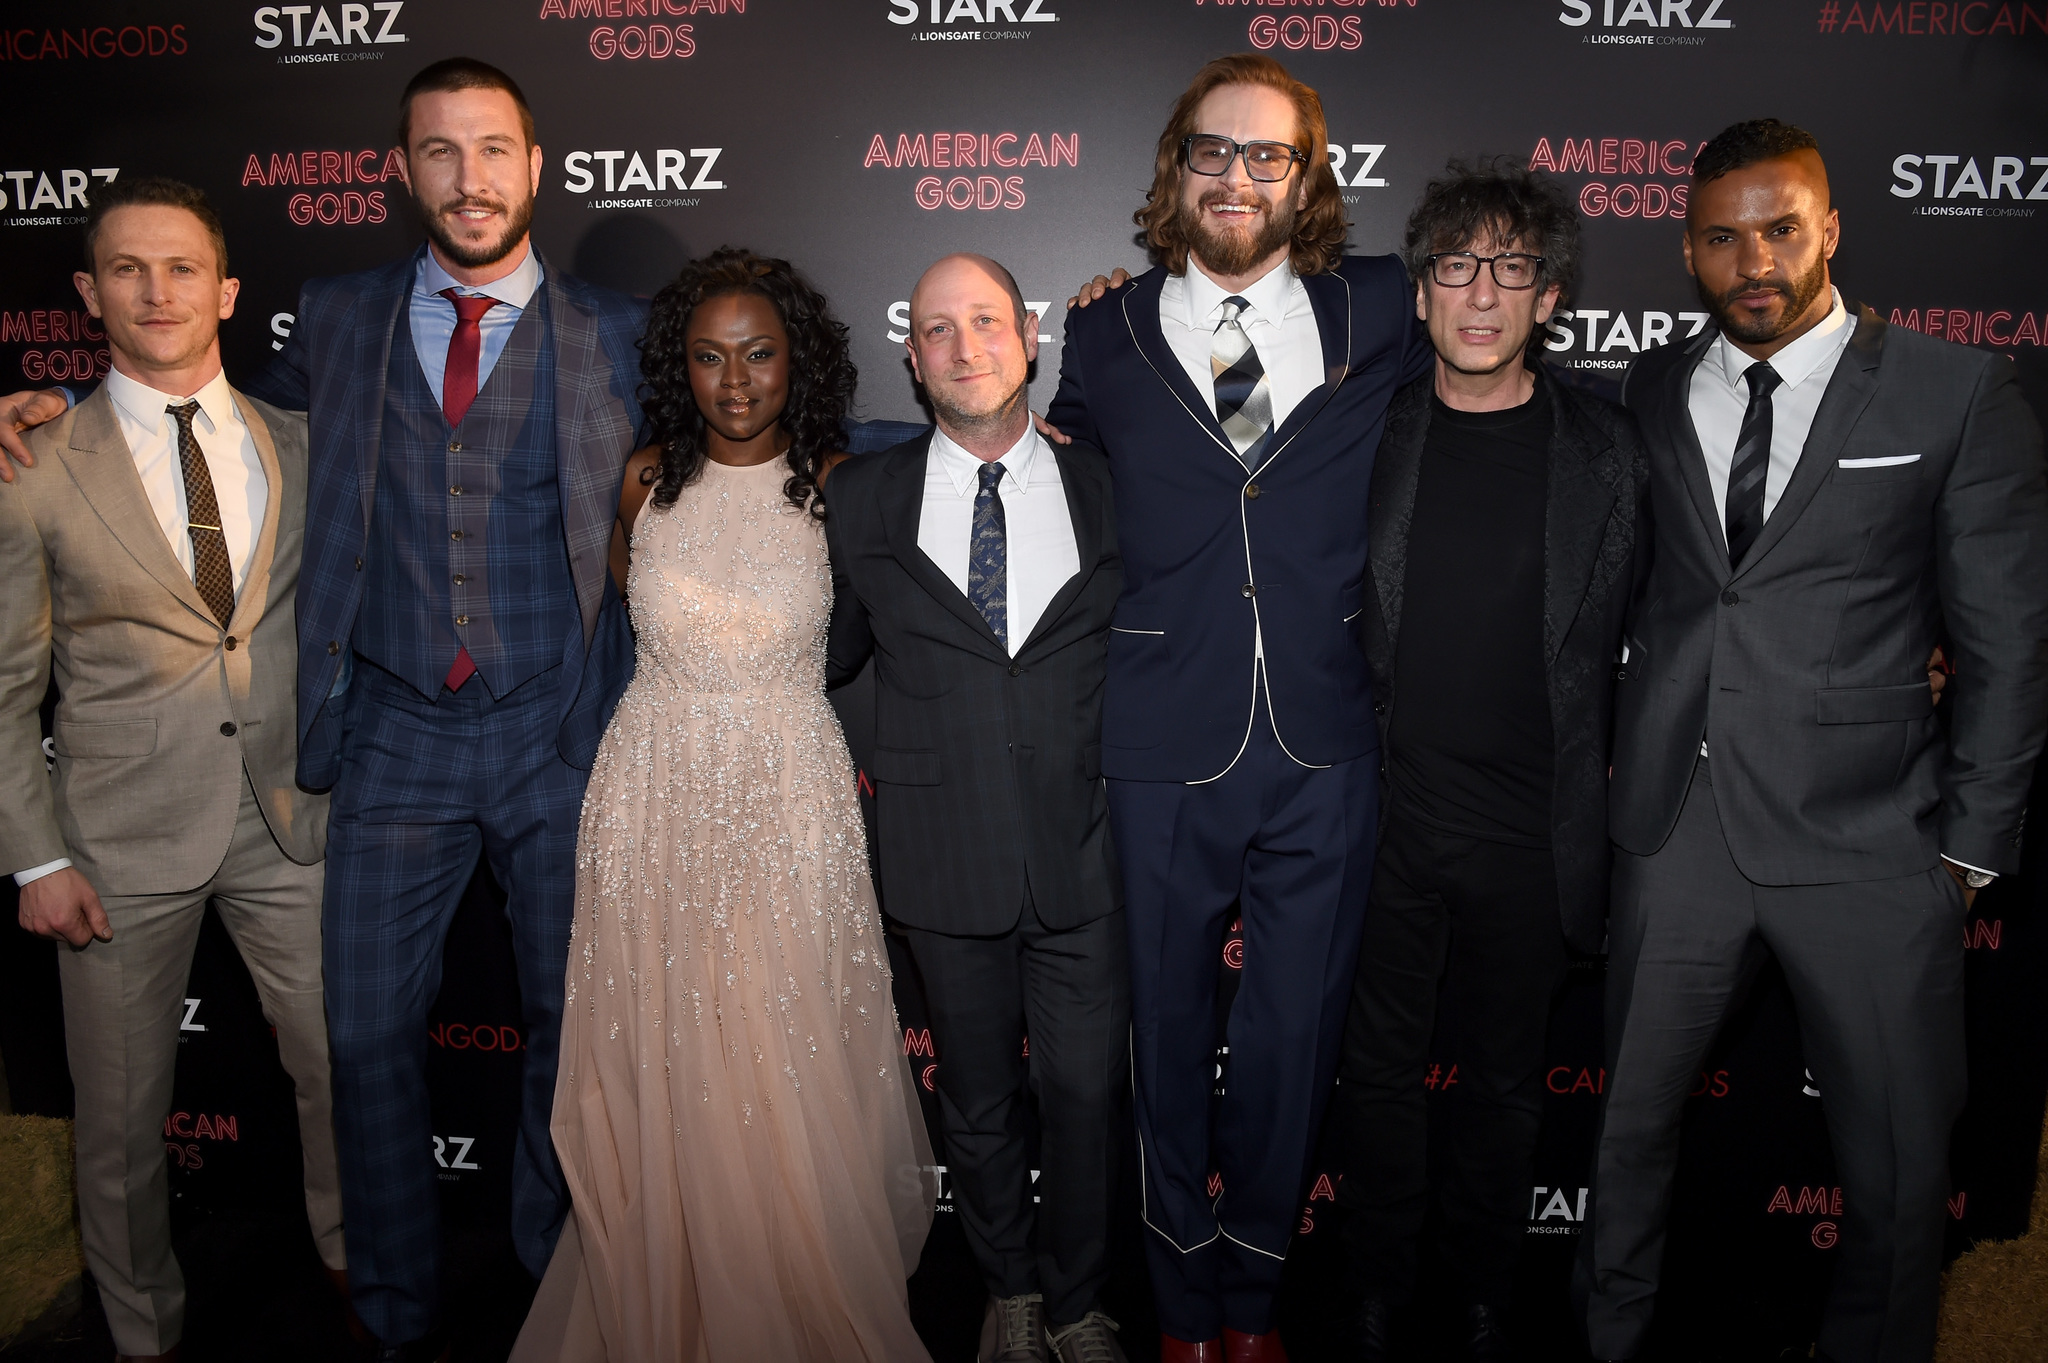 Jonathan Tucker, Bryan Fuller, Neil Gaiman, Michael Green, Pablo Schreiber, Ricky Whittle, and Yetide Badaki at an event for American Gods (2017)